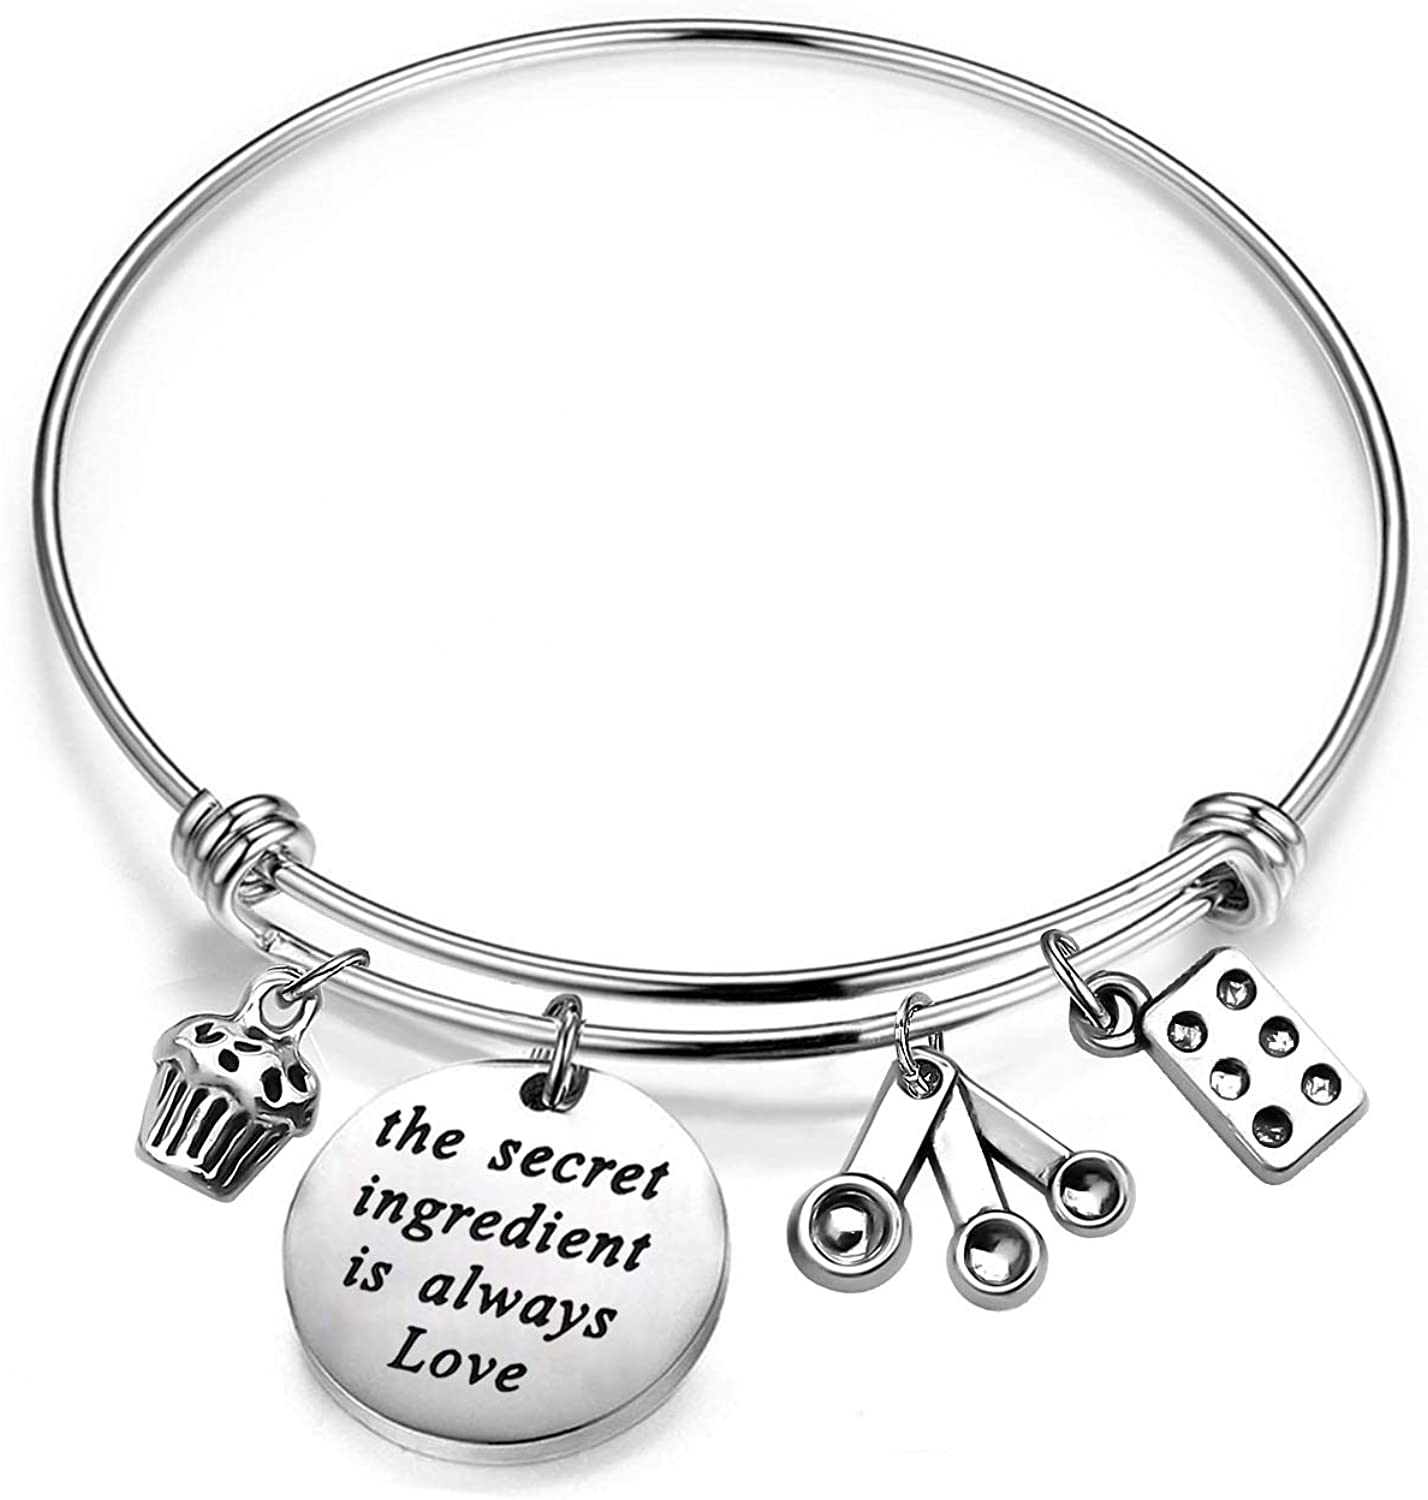 Gzrlyf Baker Bracelet The Secret Ingredient is Always Love Inspirational Gifts for Baker Pastry Chef Culinary Students